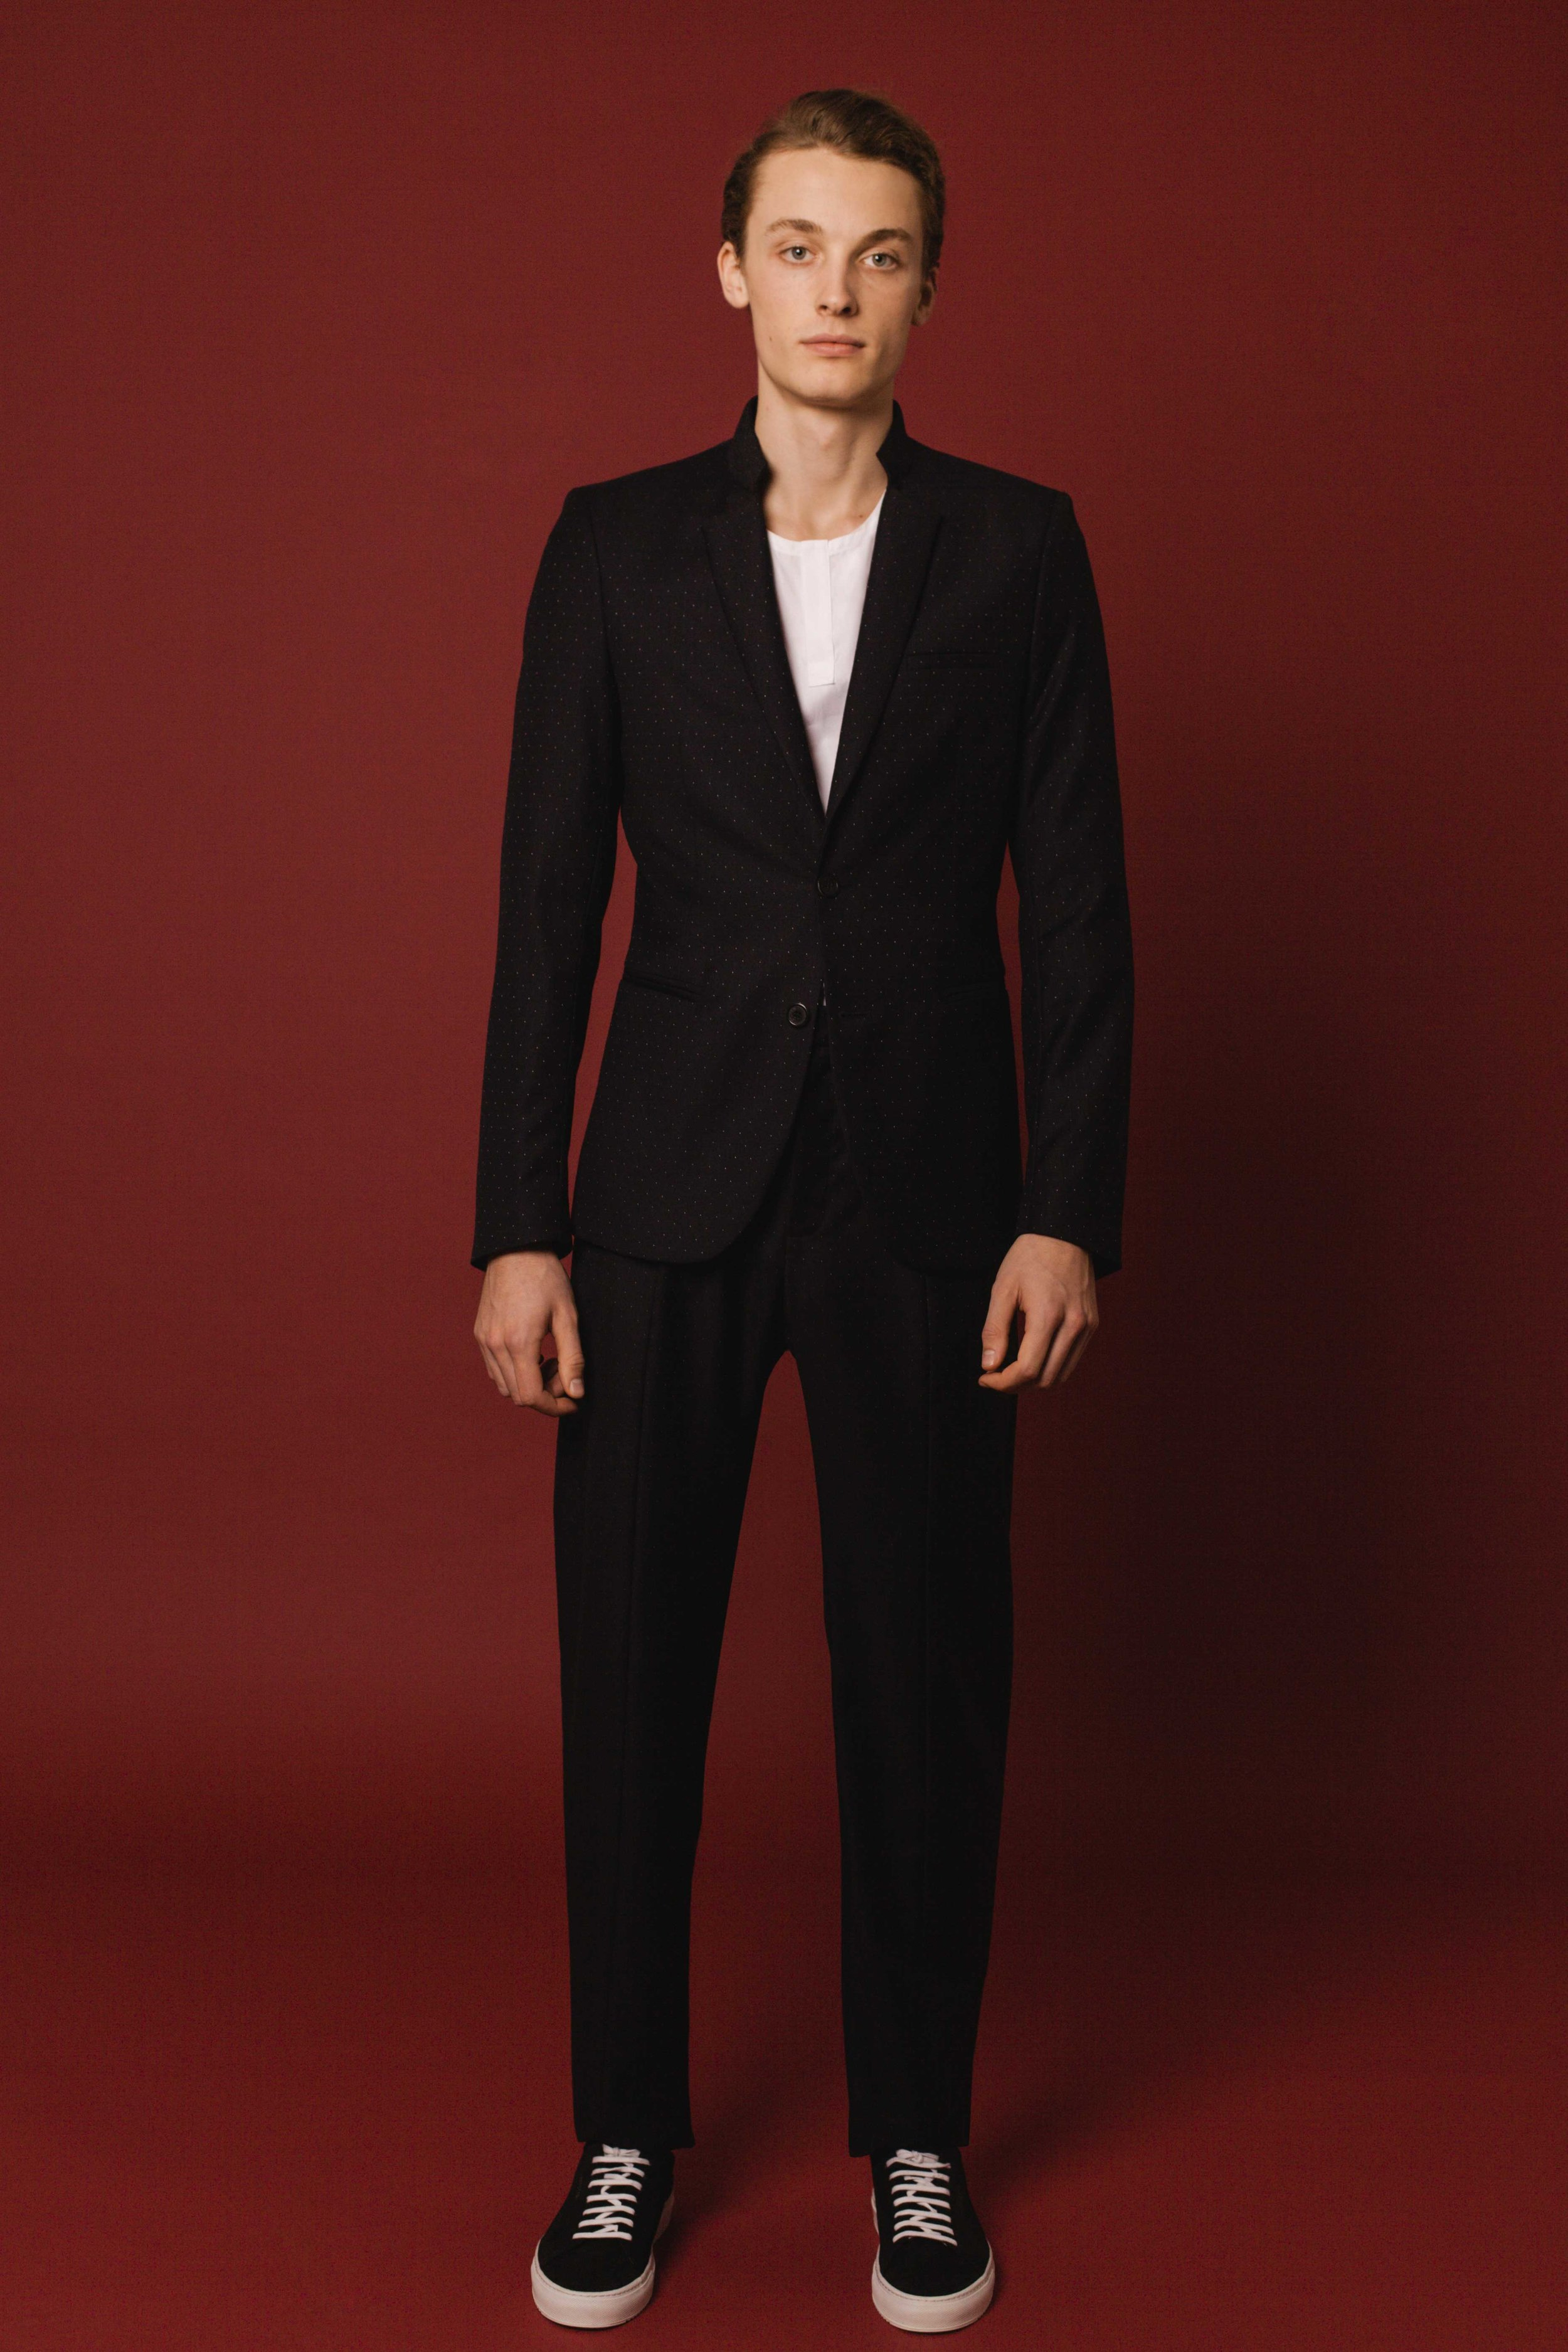 Contemporary jacket black polka dot wool Jodhpur trousers black polka dot wool Marina shirt white cotton Made in Italy